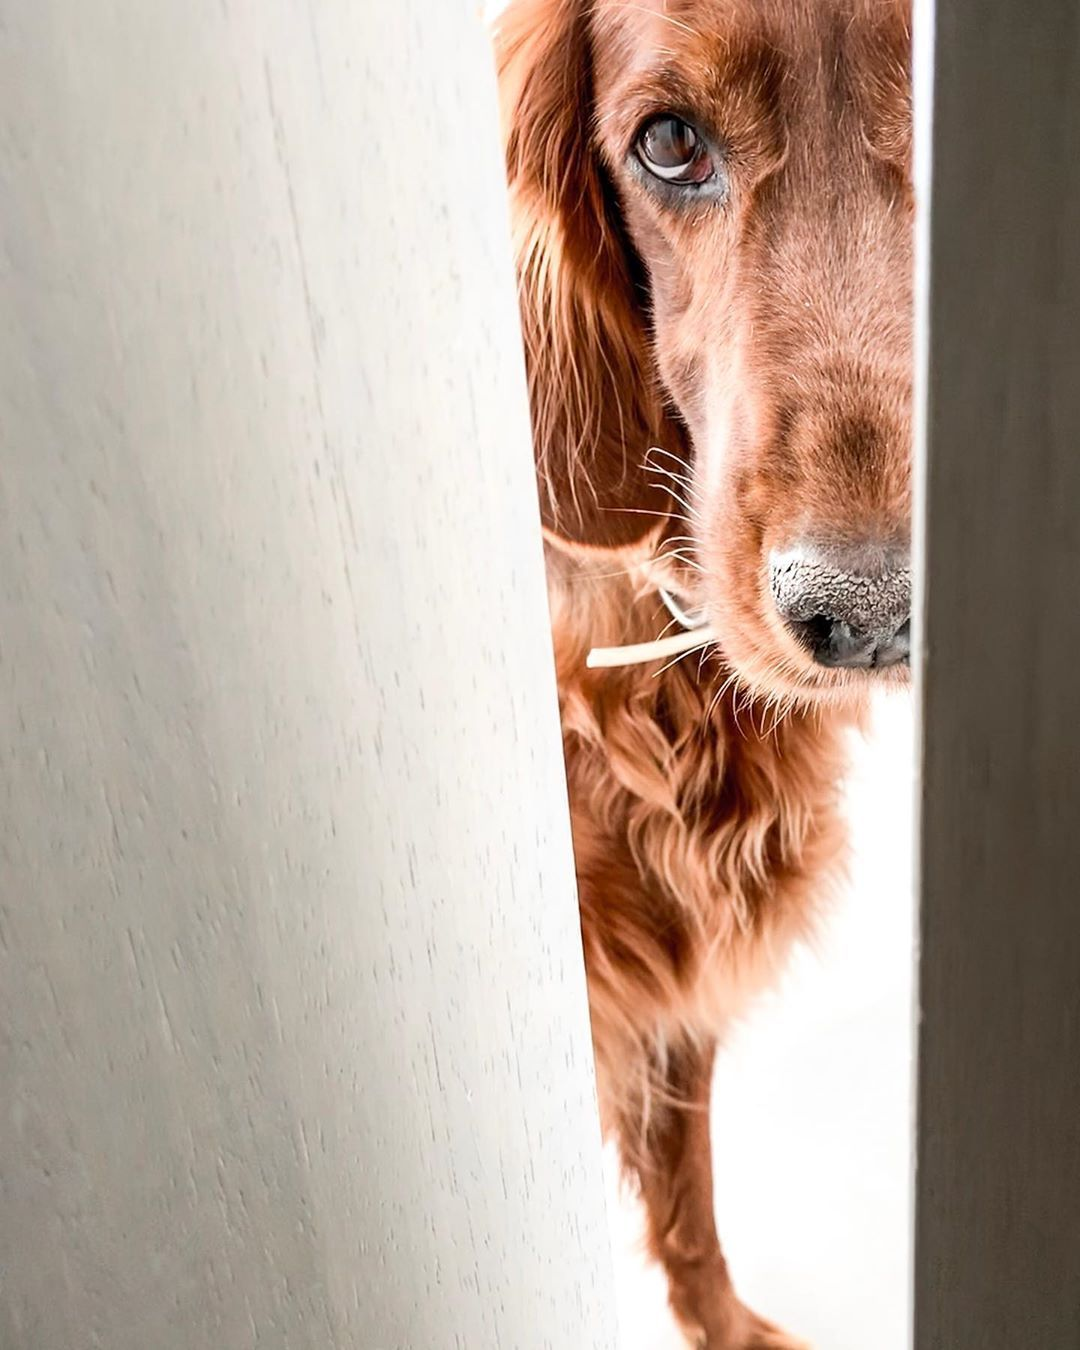 Of course, when cookies are packed in the kitchen, I'm standing right behind the door ...